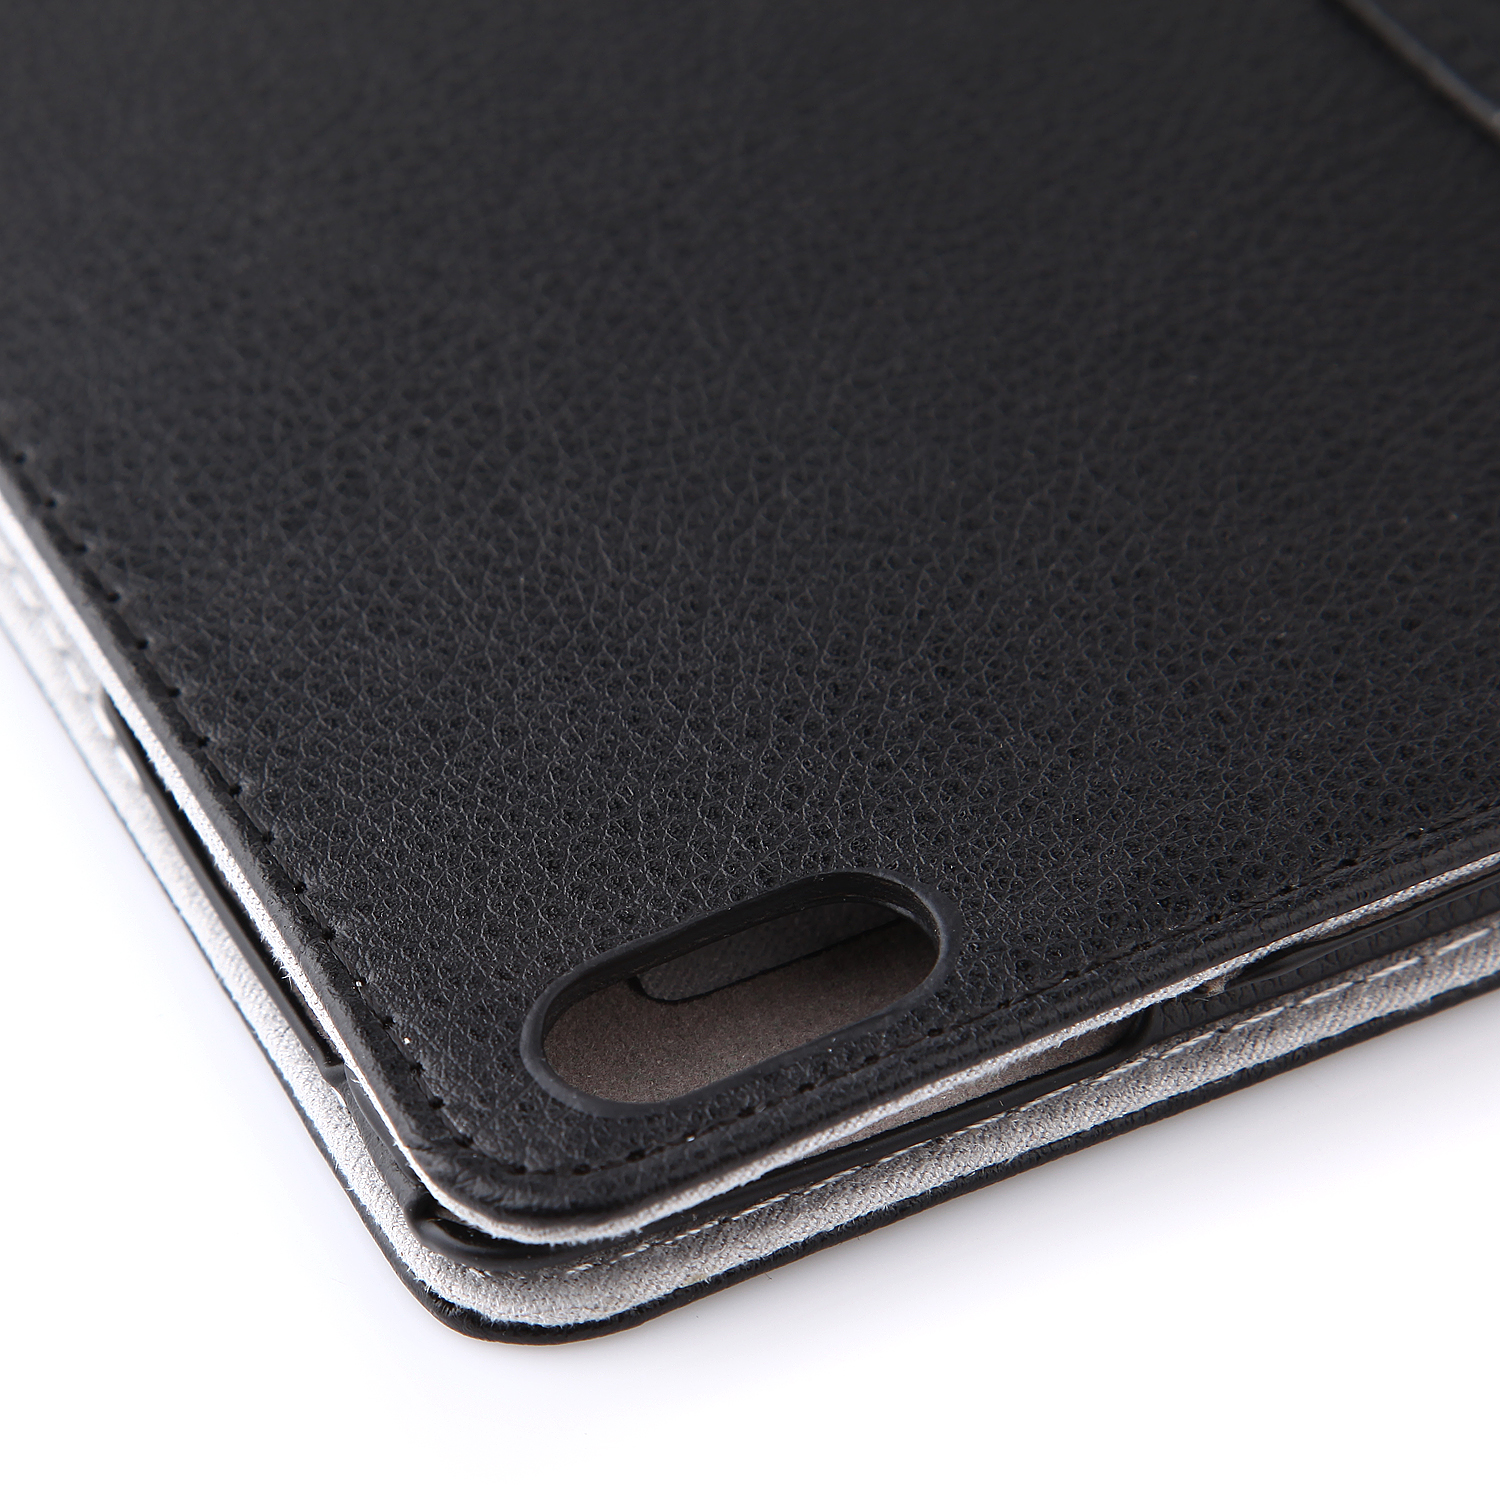 Protective PU Leather Stand Case Cover for Lenovo A7600 Tablet PC Black